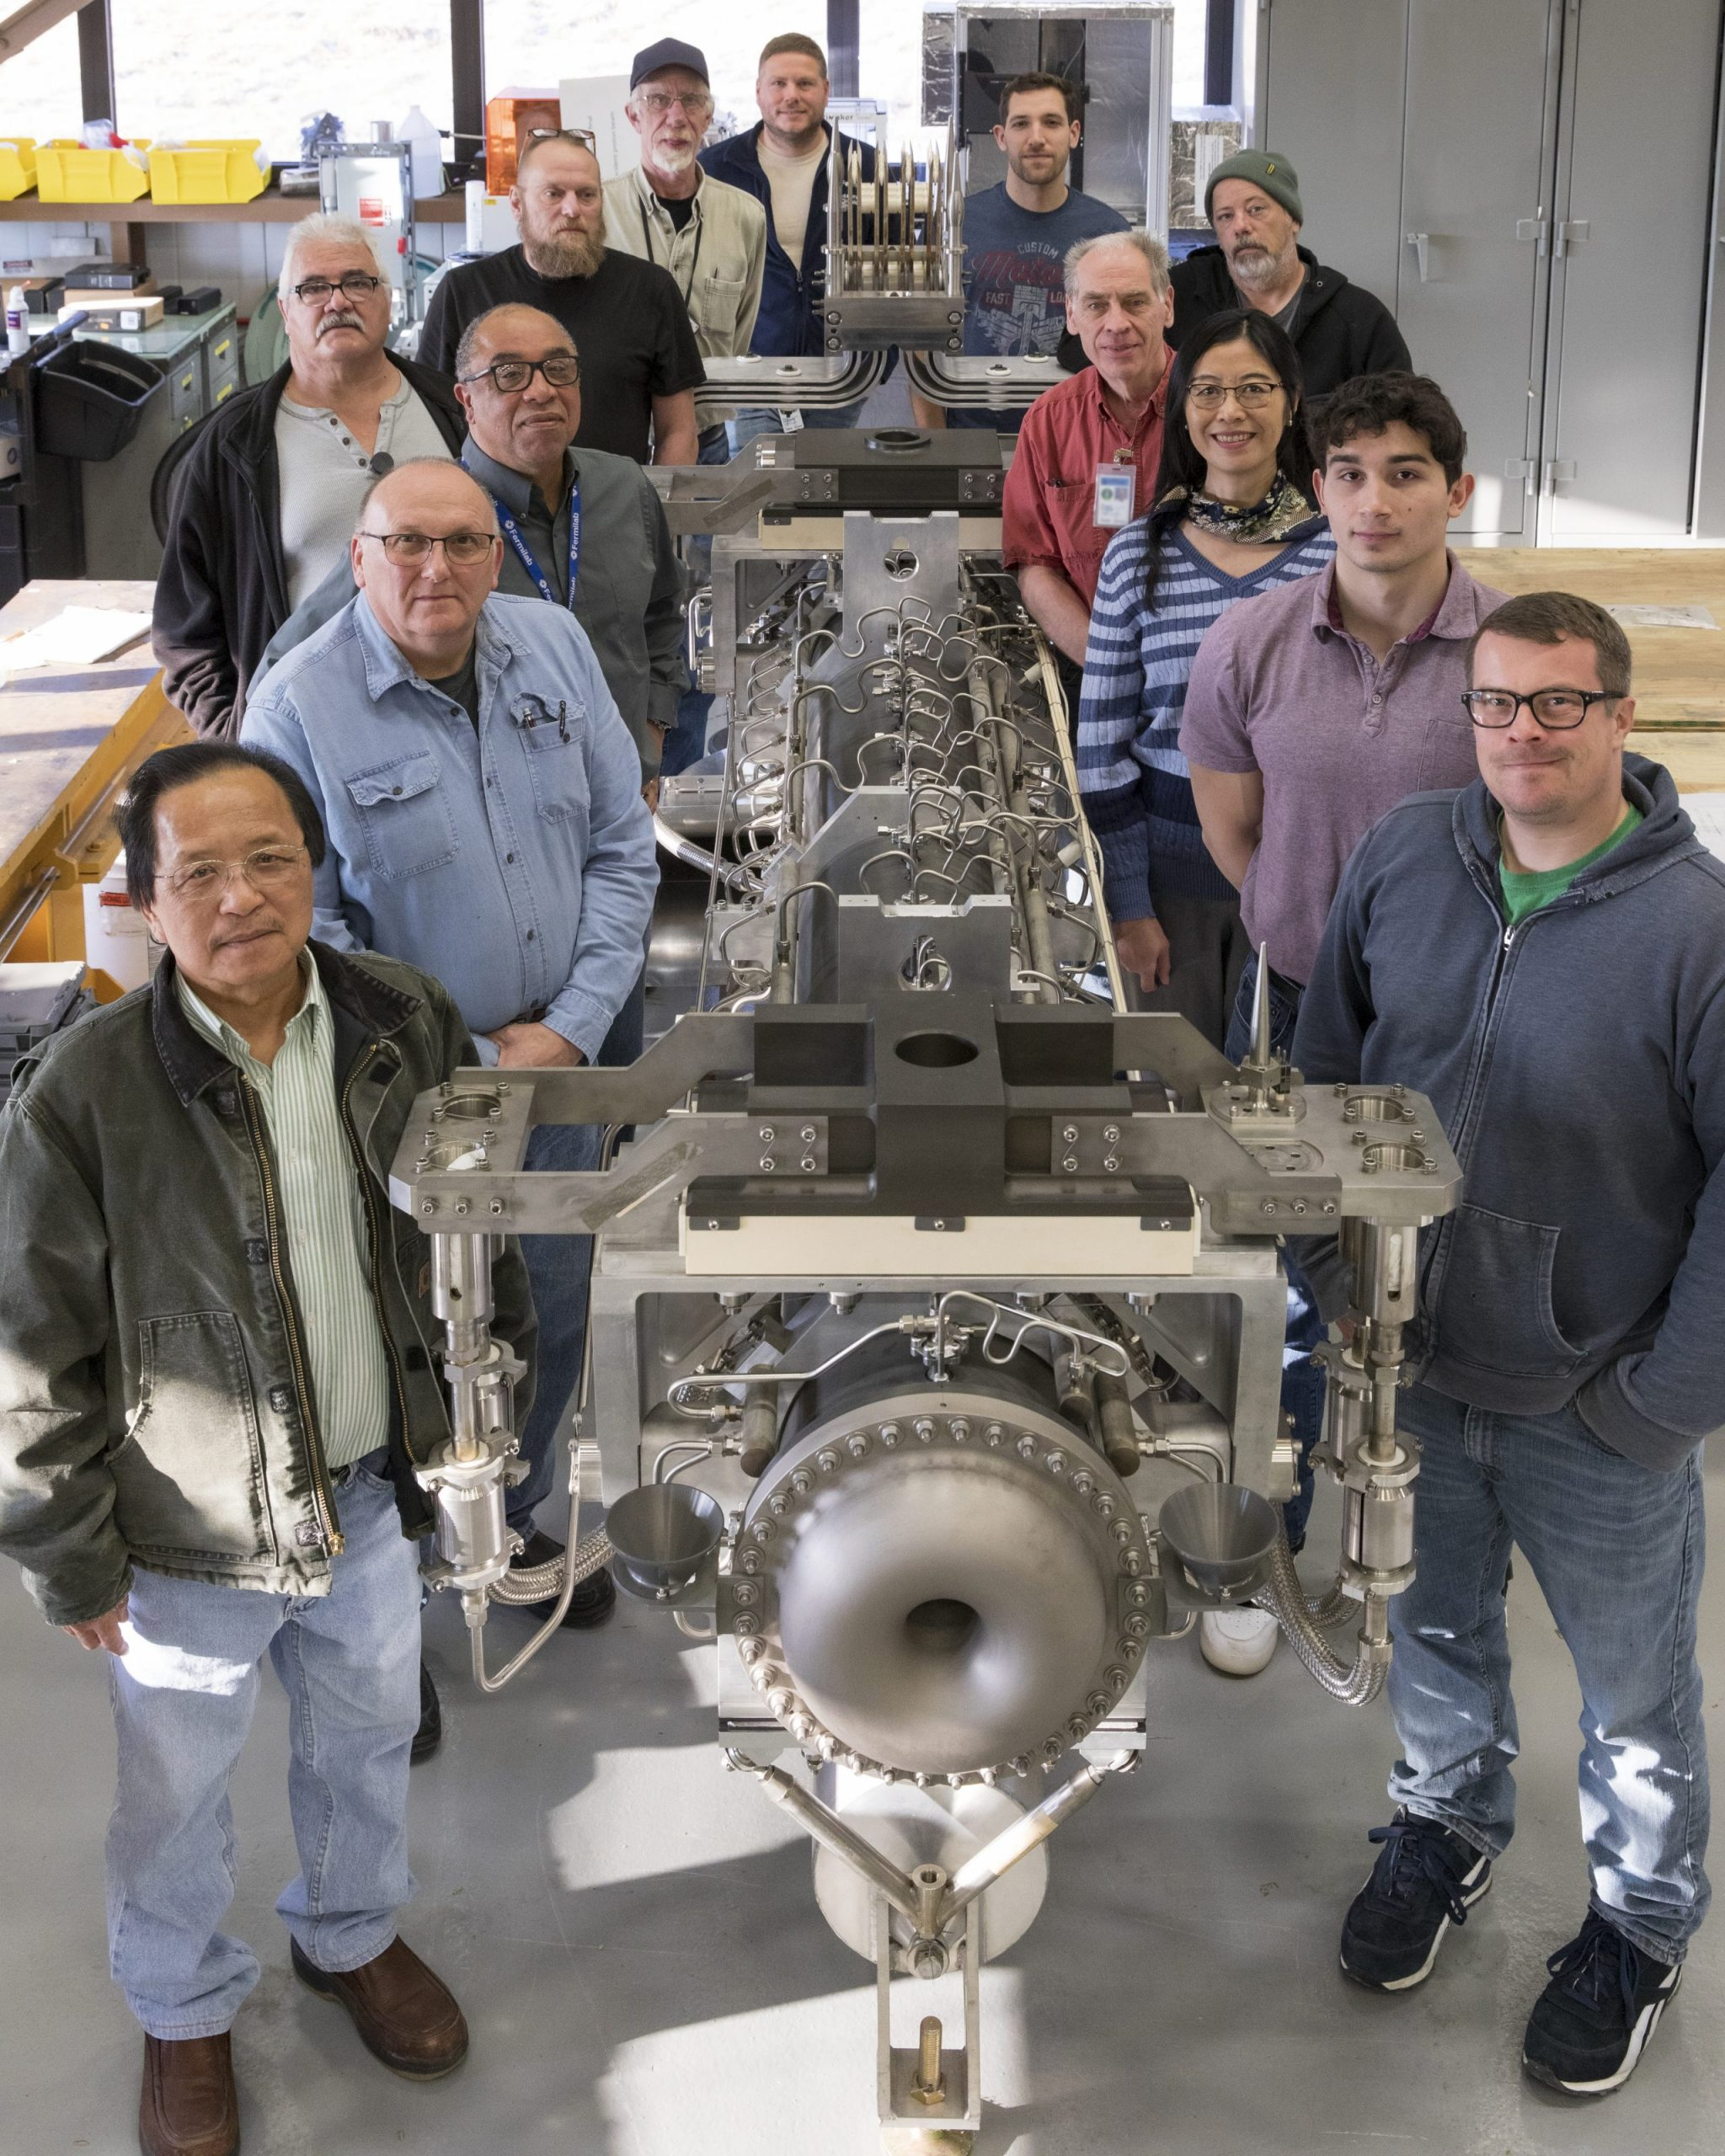 Twelve men and one woman in casual dress gather around a large pewter-colored piece of equipment.